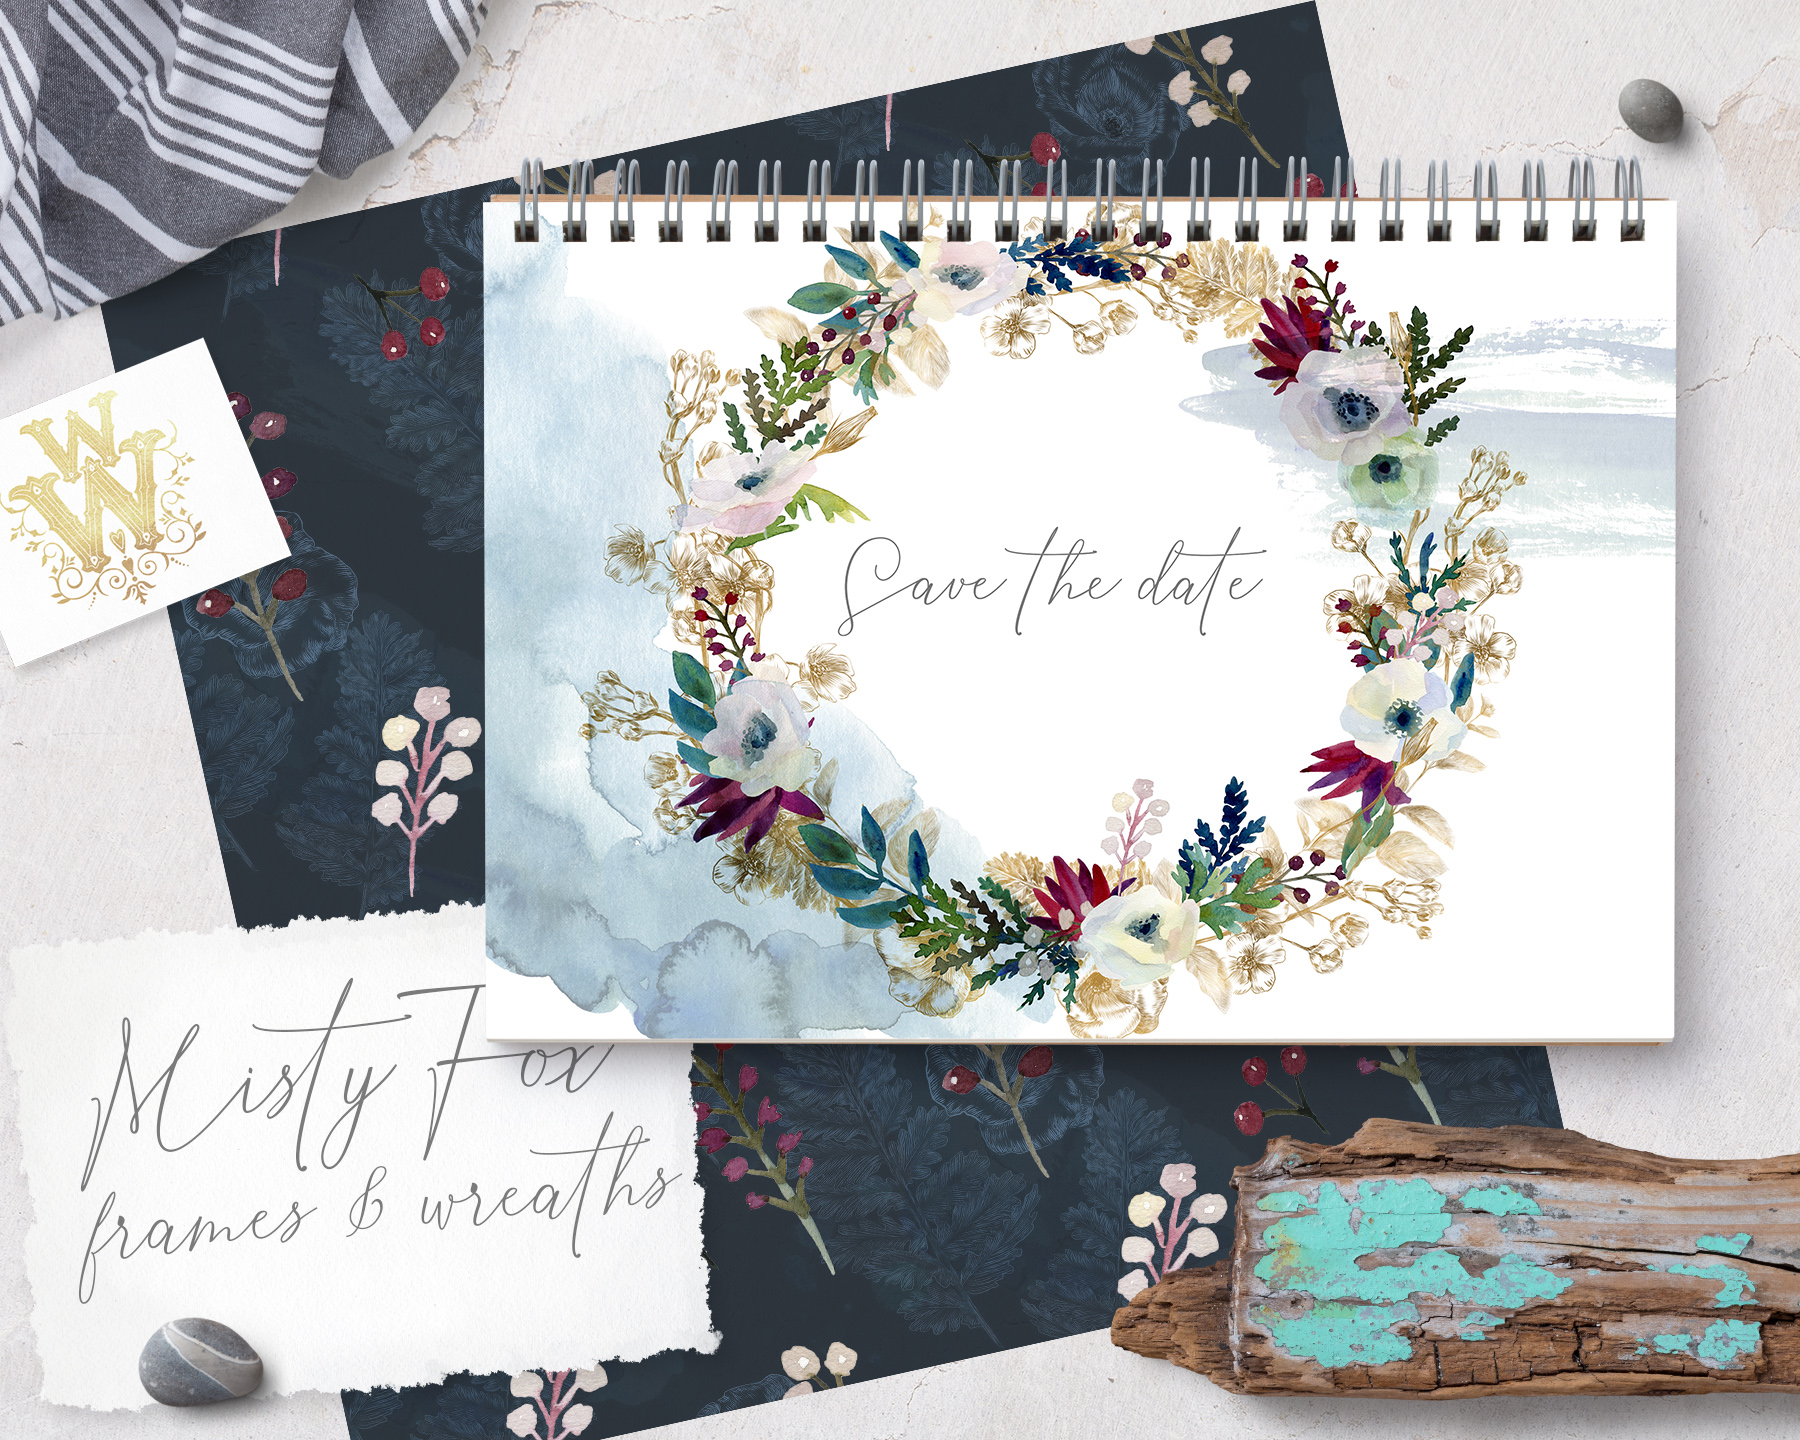 Watercolor white flowers frame, wedding wreath invitation example image 4